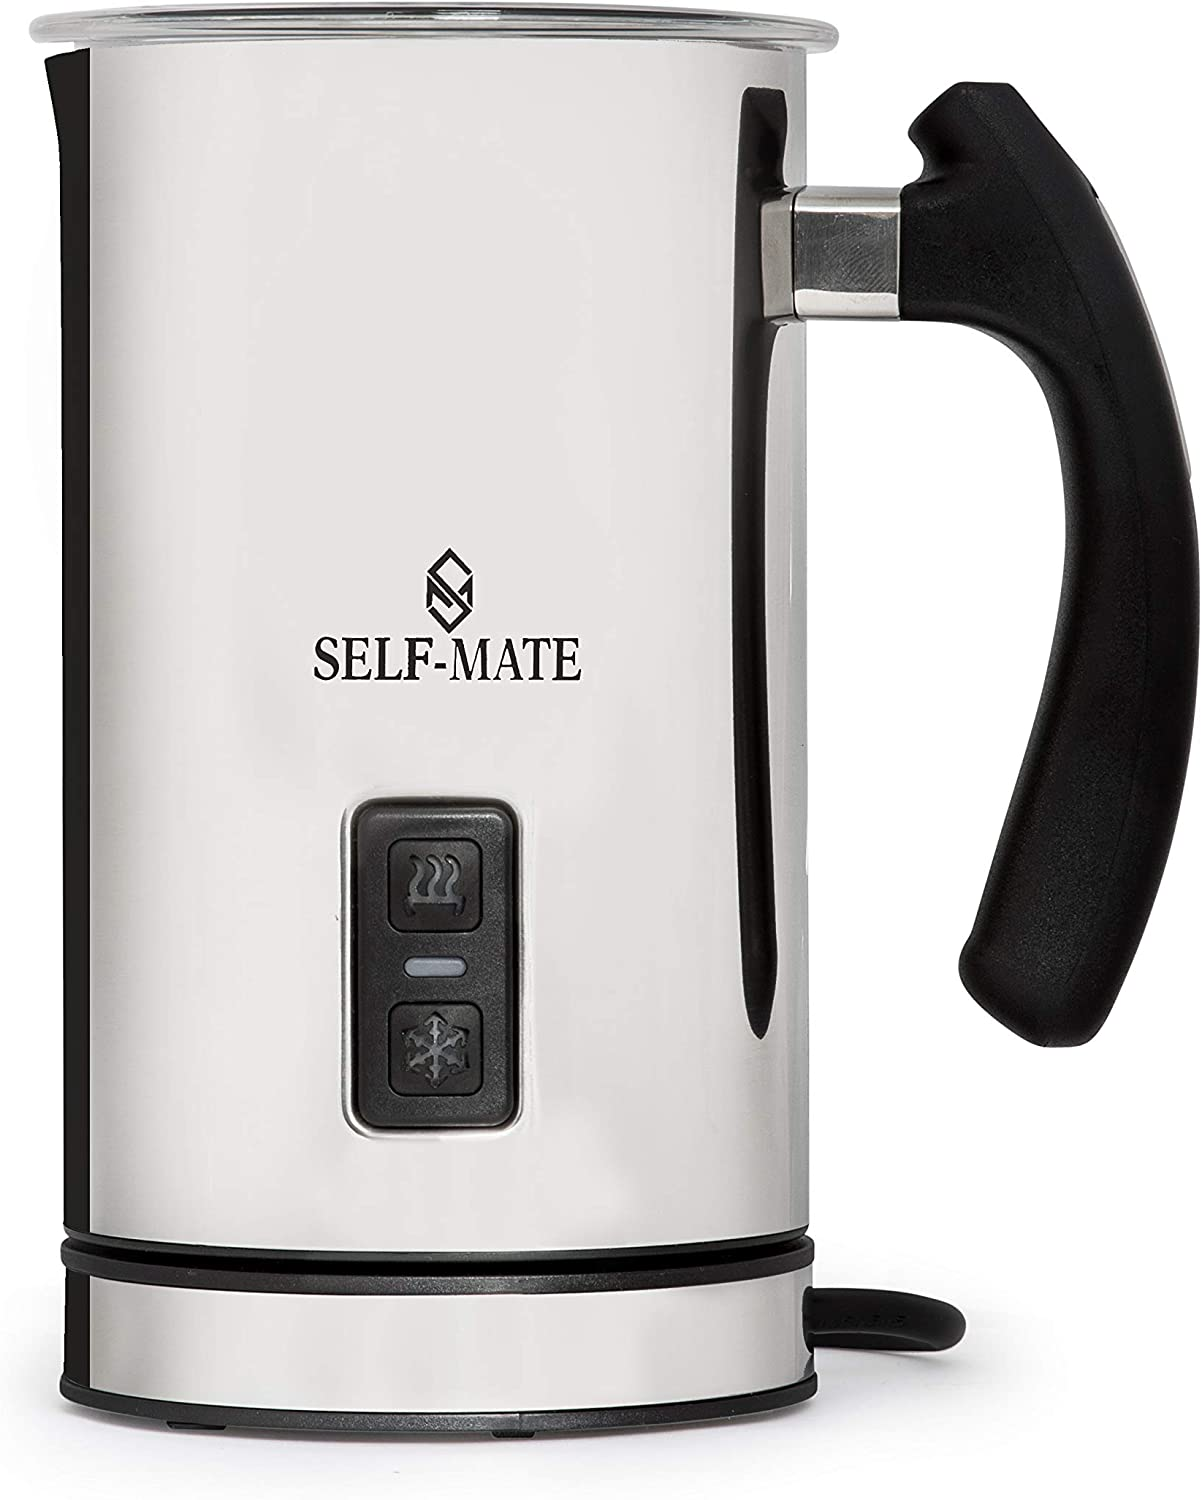 Automatic Milk Frother, Heater and Cappuccino Maker Stainless Steel Electric Milk Steamer Machine Cold or Hot Milk, Espresso, Chocolate, Coffee, Foamer, Easy to Use, Sturdy & Silent for Home Or Café